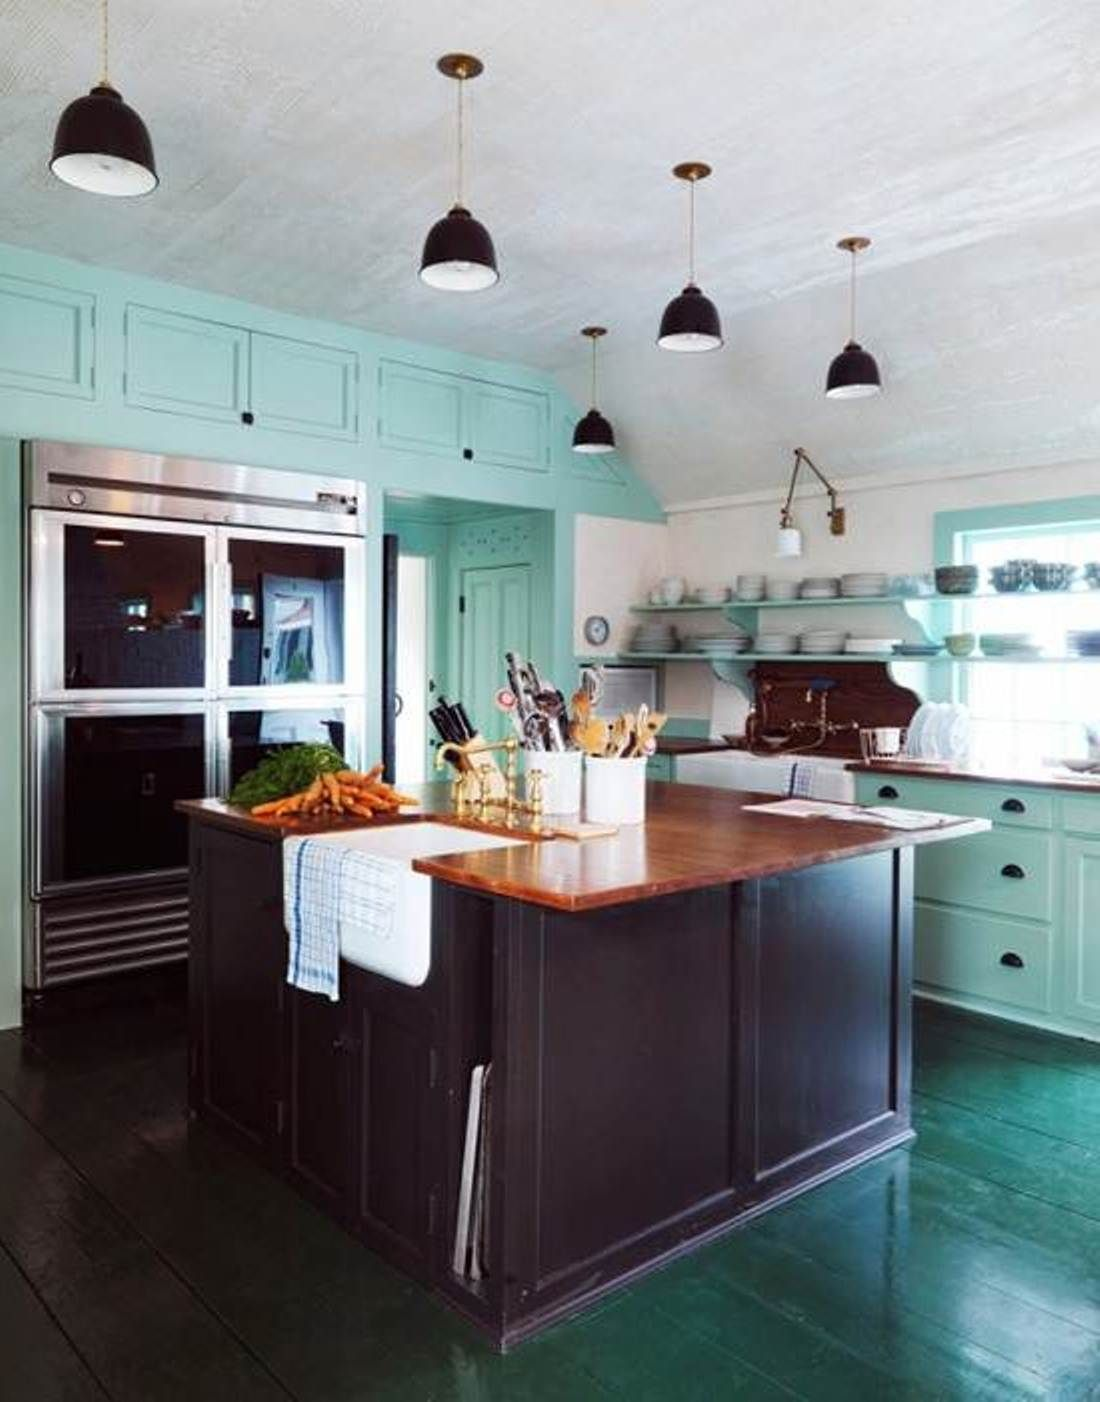 Contemporary Modern Kitchen Colors | Kitchen colors, Contemporary ...